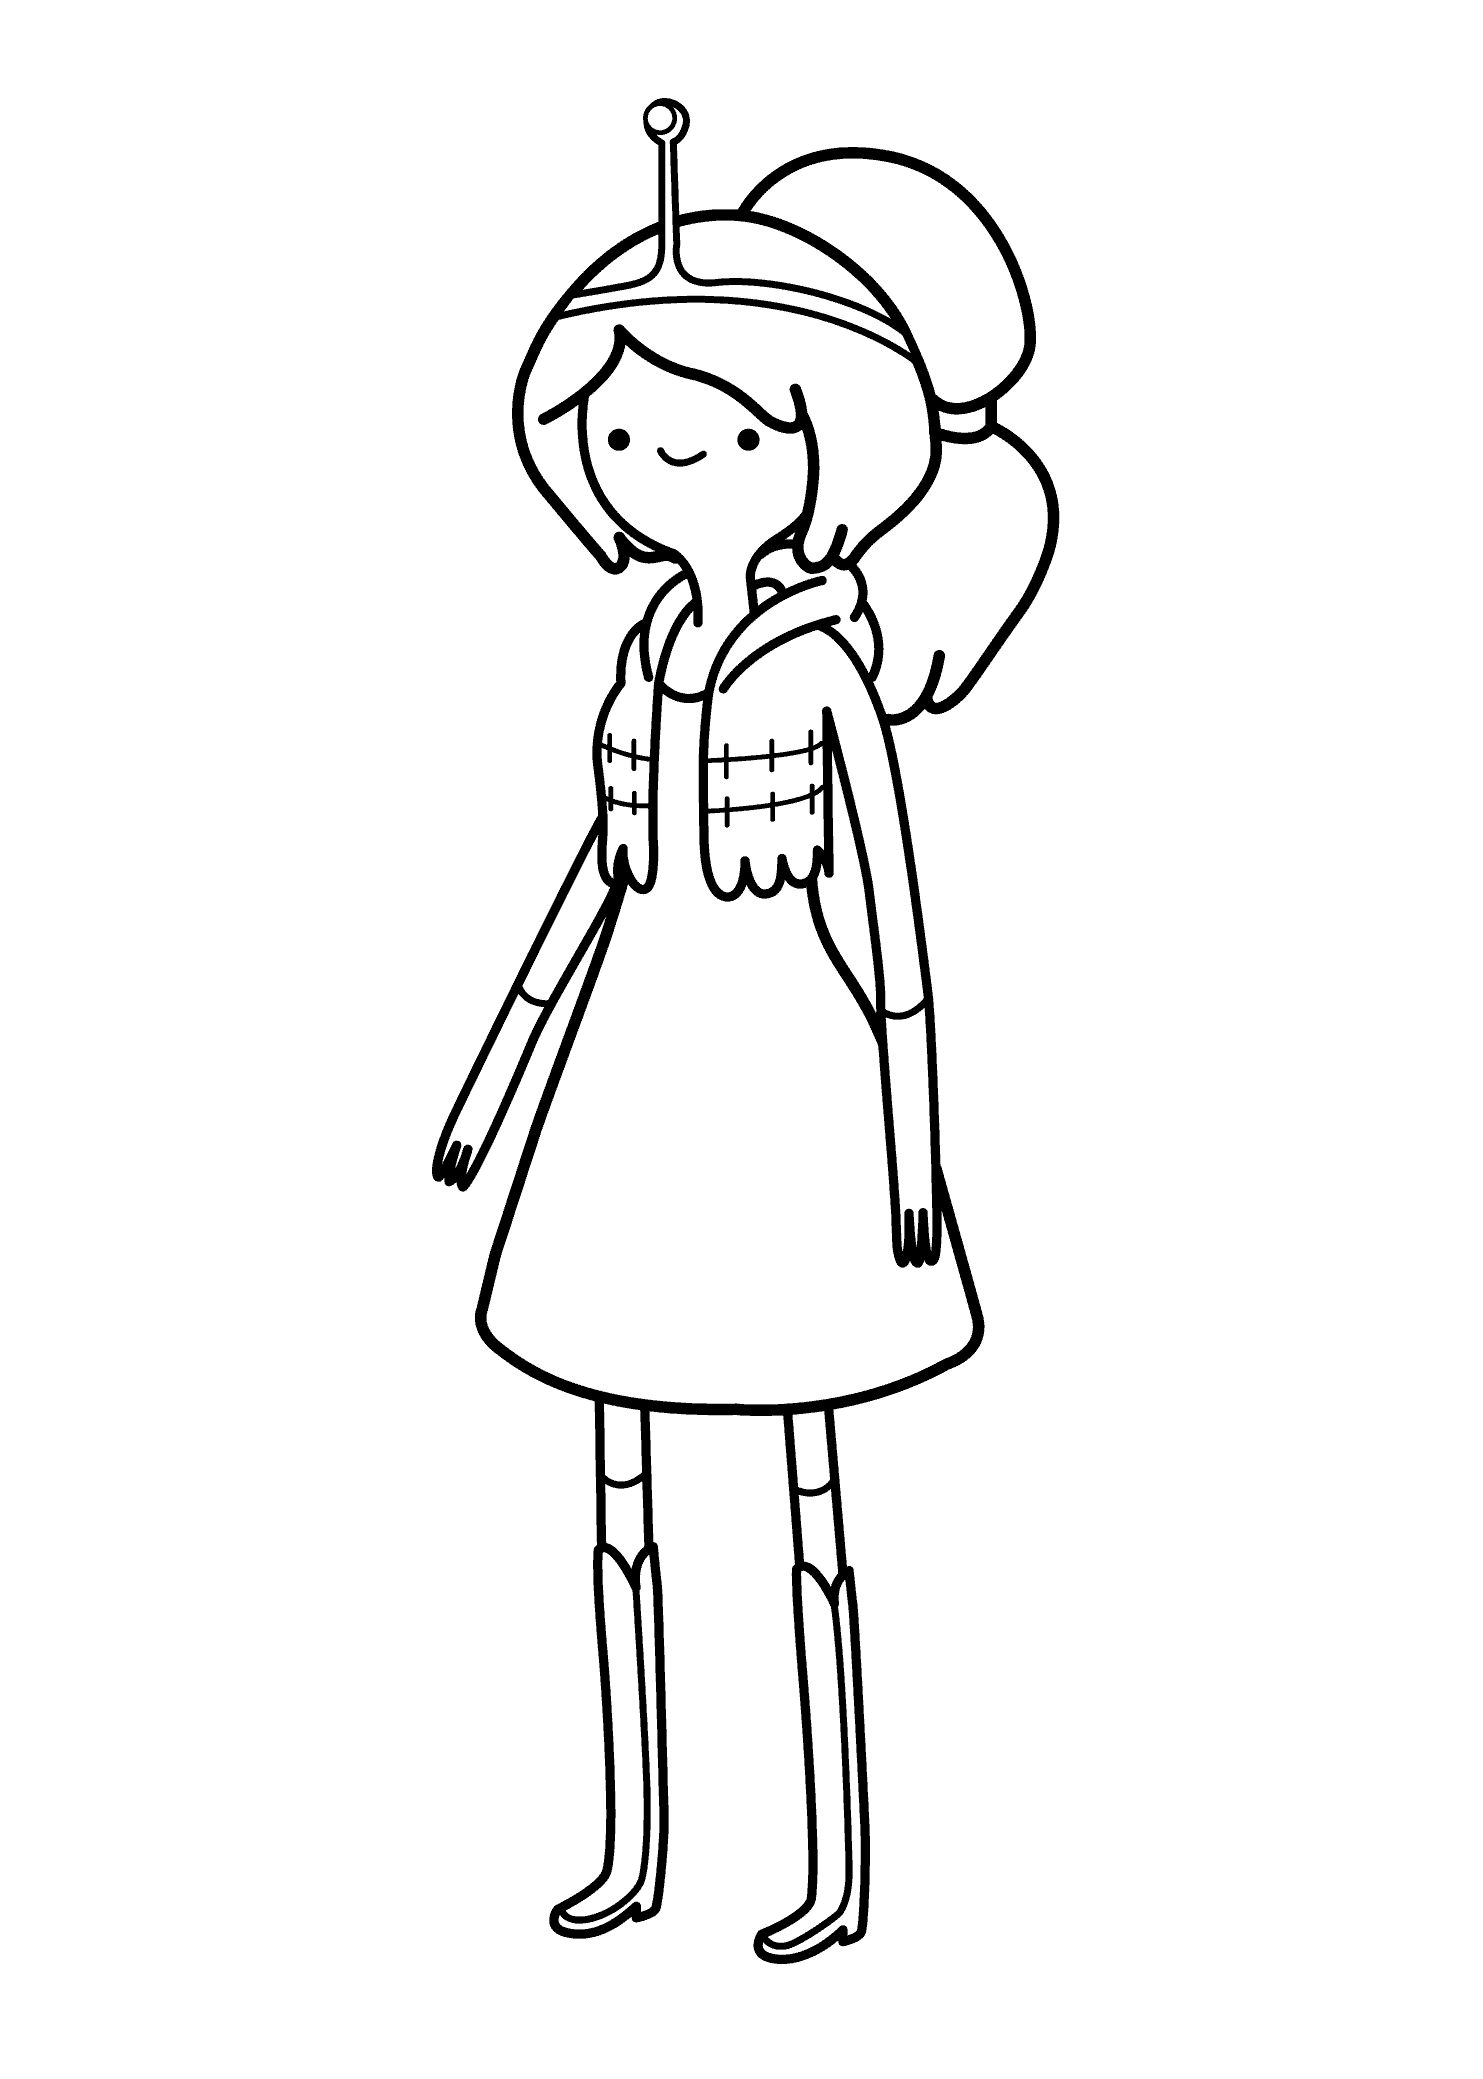 Adventure Time Printable Coloring Page For Kids Finn And Jake Adventure Time Adventure Time Coloring Pages Coloring Books Coloring Pages